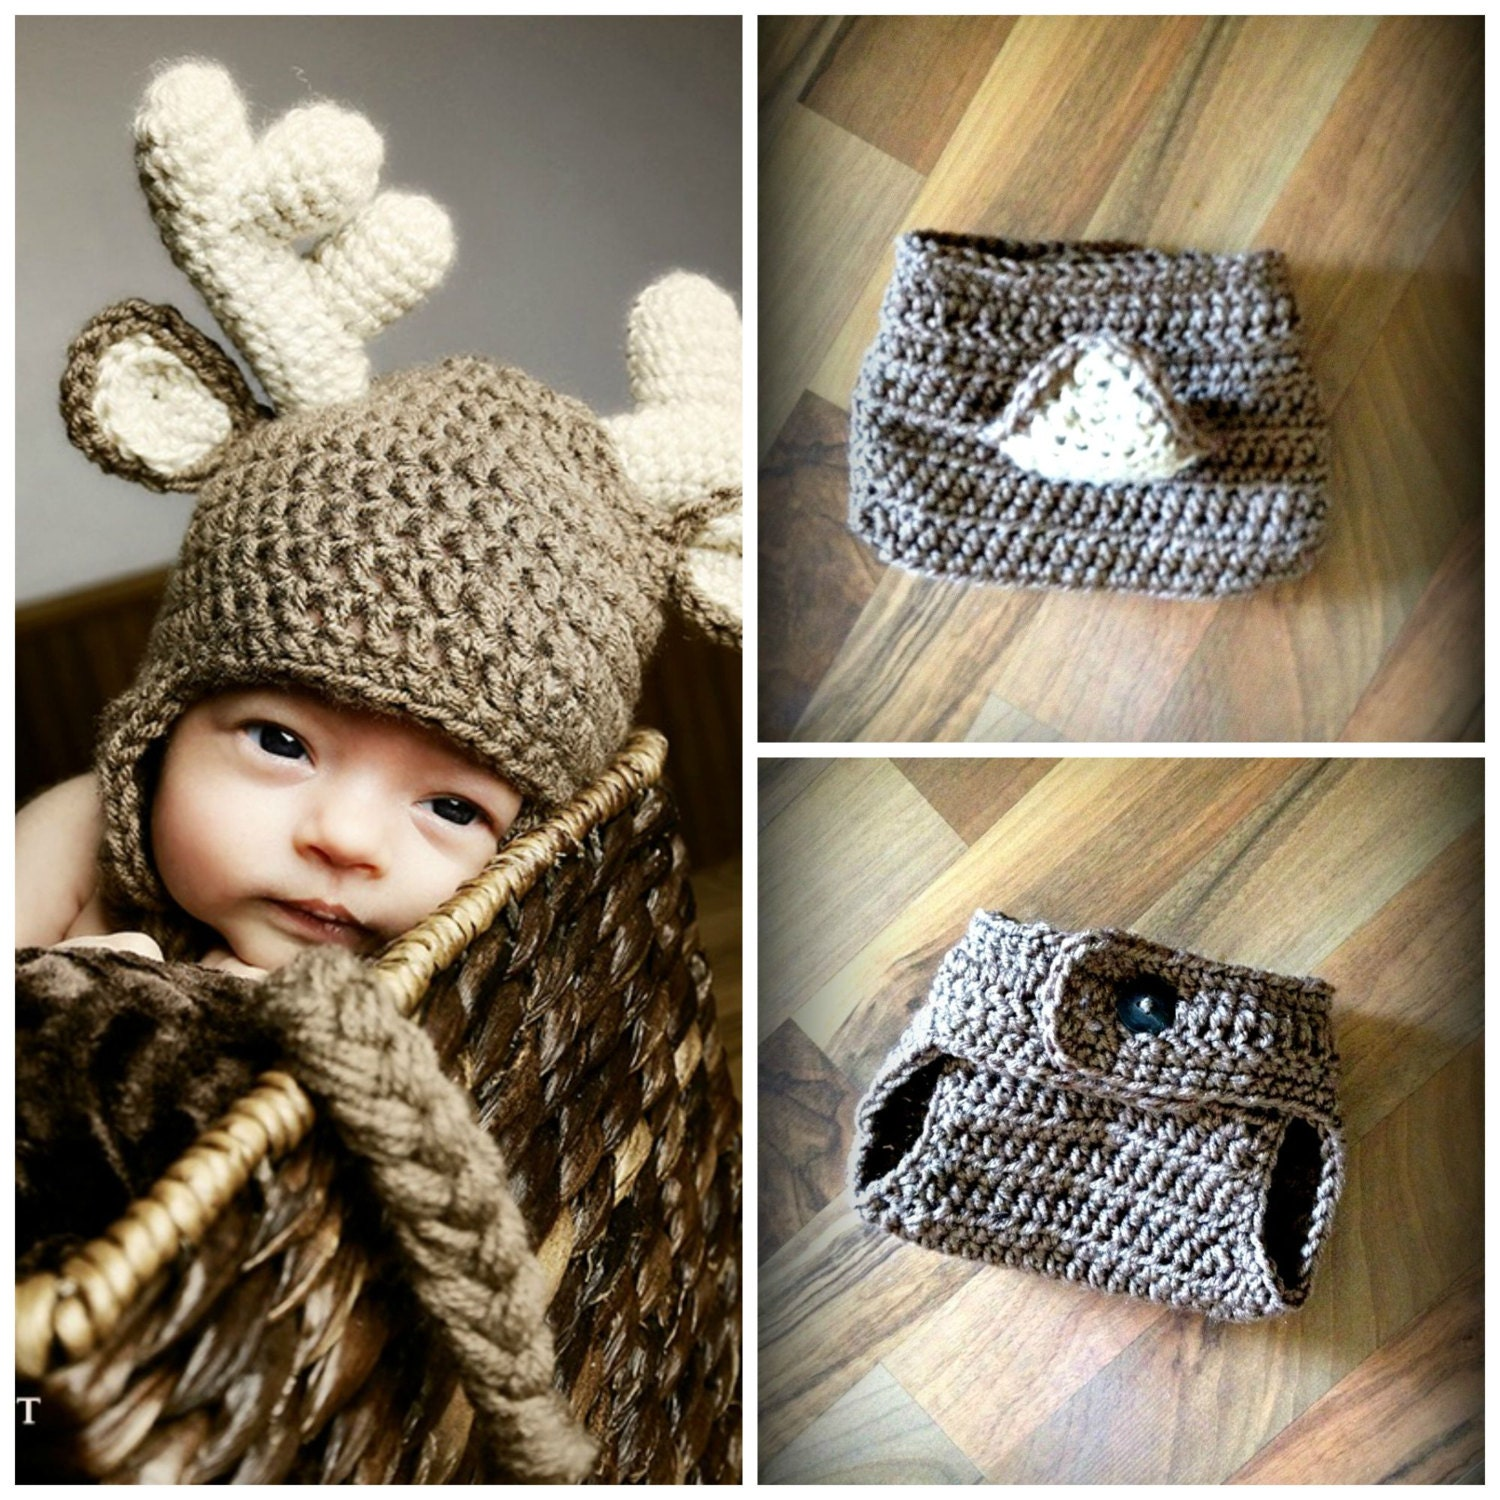 Book Cover Crochet Hat : Crochet deer hat and matching diaper cover